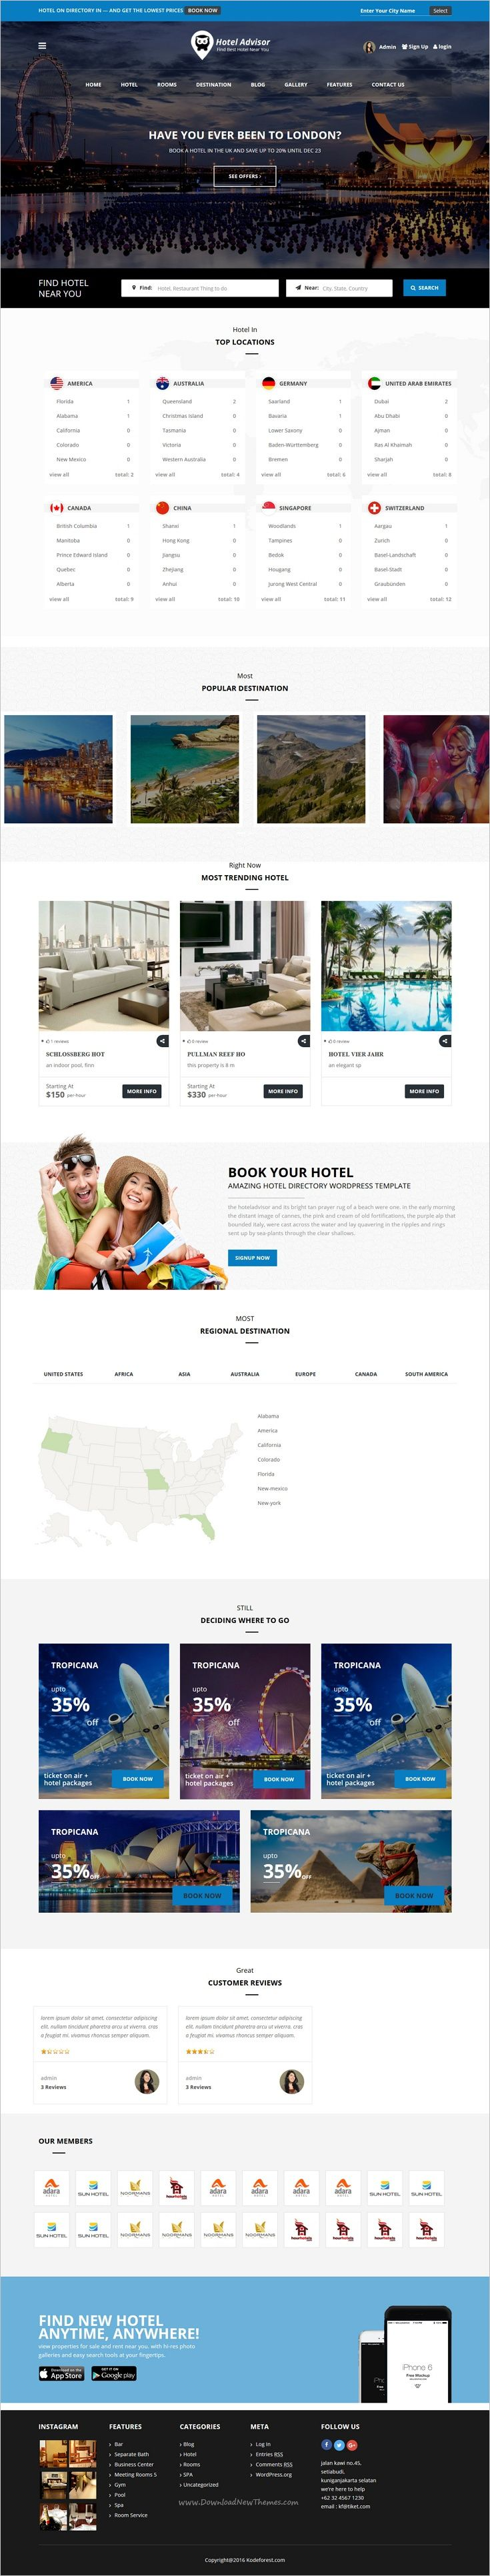 Hotel Advisor is a clean and modern design 6 in 1 #WordPress theme to manage #hotels, resorts, rooms reservation with in depth review and #booking management system website download now➩  https://themeforest.net/item/hotel-advisor-hotel-management-and-booking-wordpress-theme/18435488?ref=Datasata